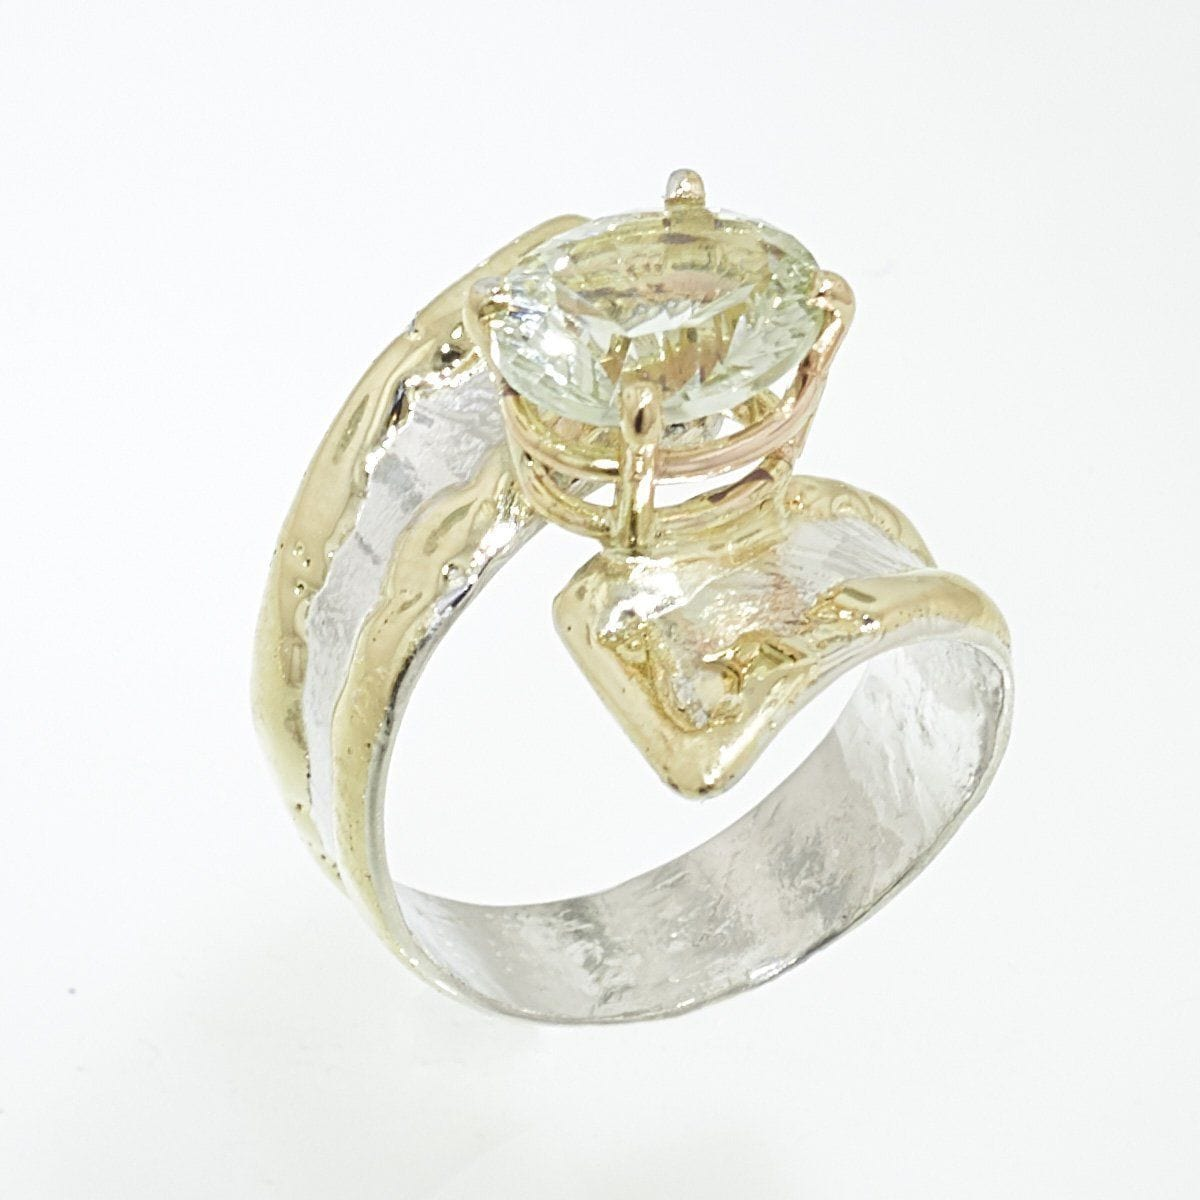 14K Gold & Crystalline Silver Prasiolite Ring - 32853-Fusion Designs-Renee Taylor Gallery